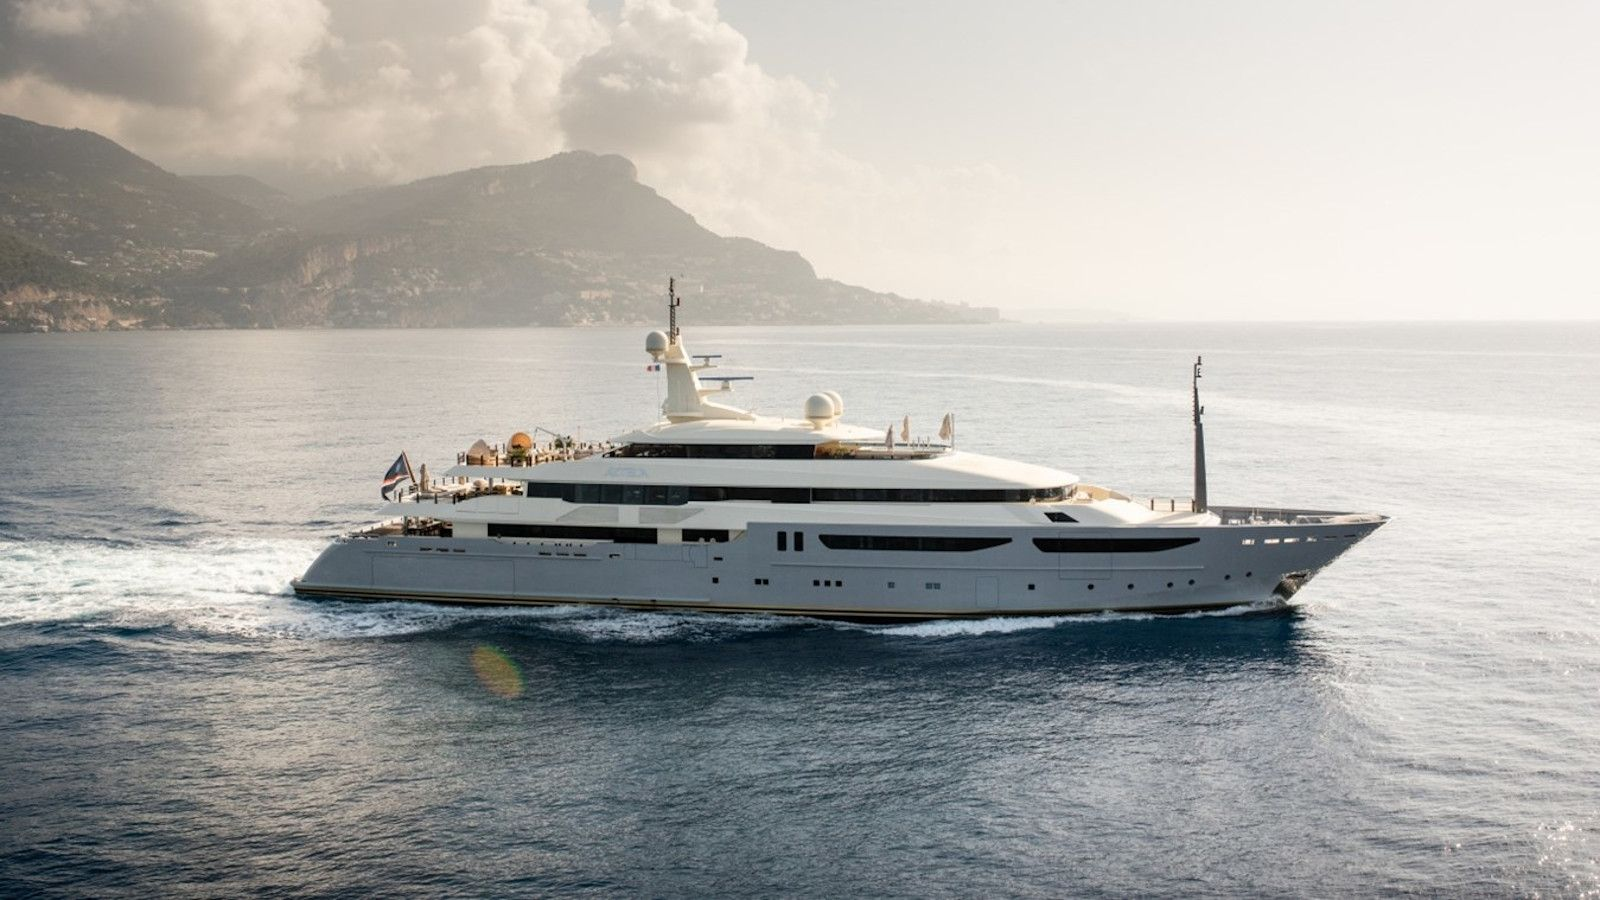 $75 Million Super Yacht Offered In Bitcoin-Only Sale